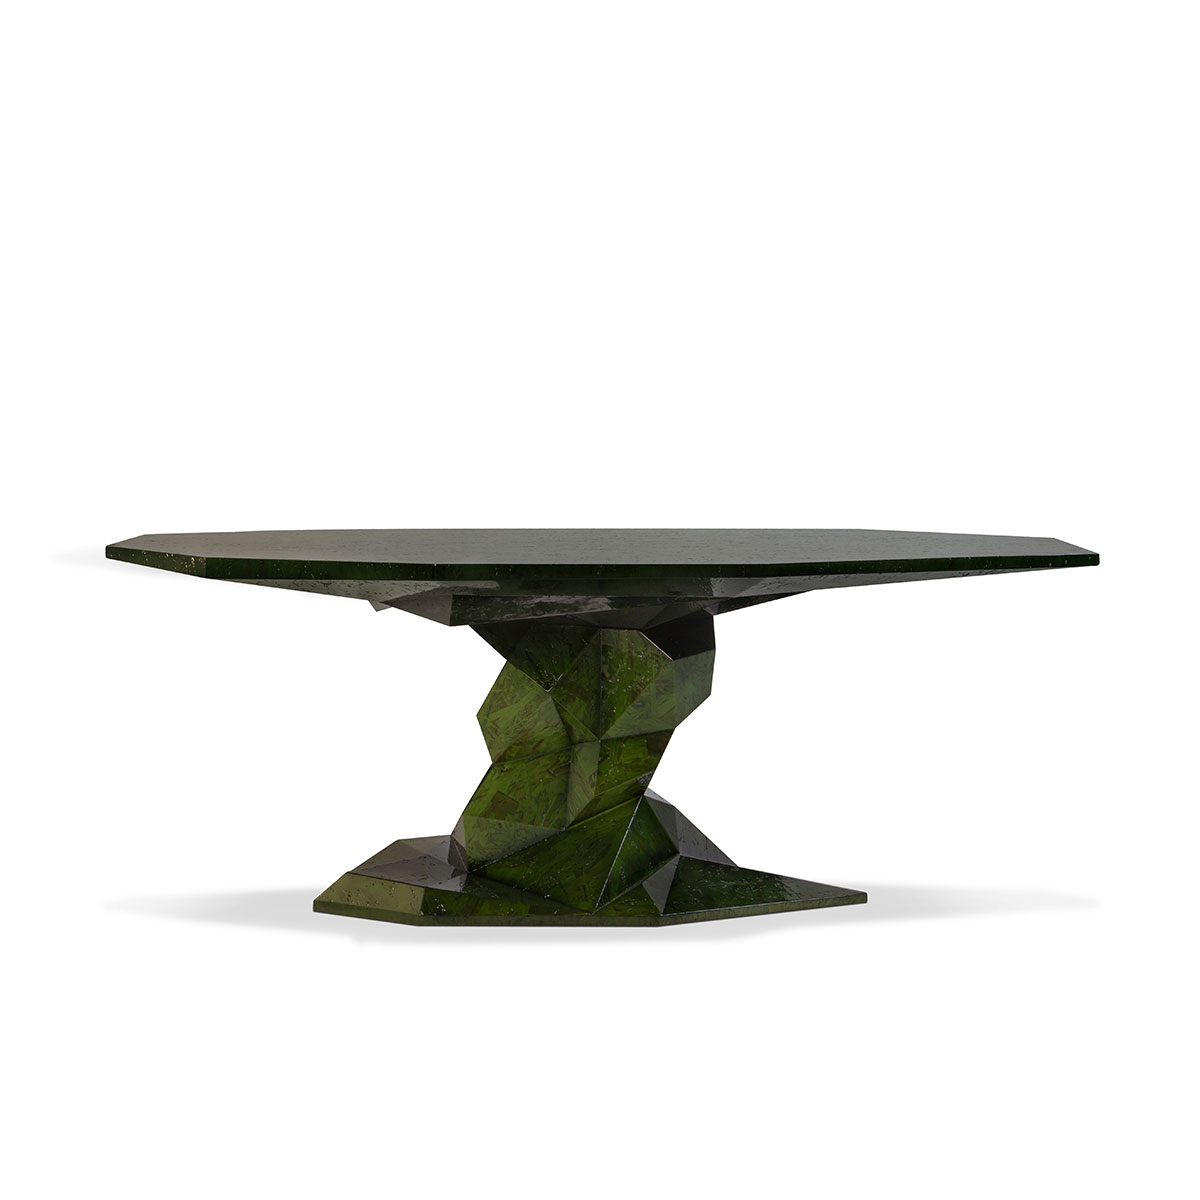 More 20 Luxury Dining Tables That Are Perfect For Your Home_17More 20 Luxury Dining Tables That Are Perfect For Your Home_17